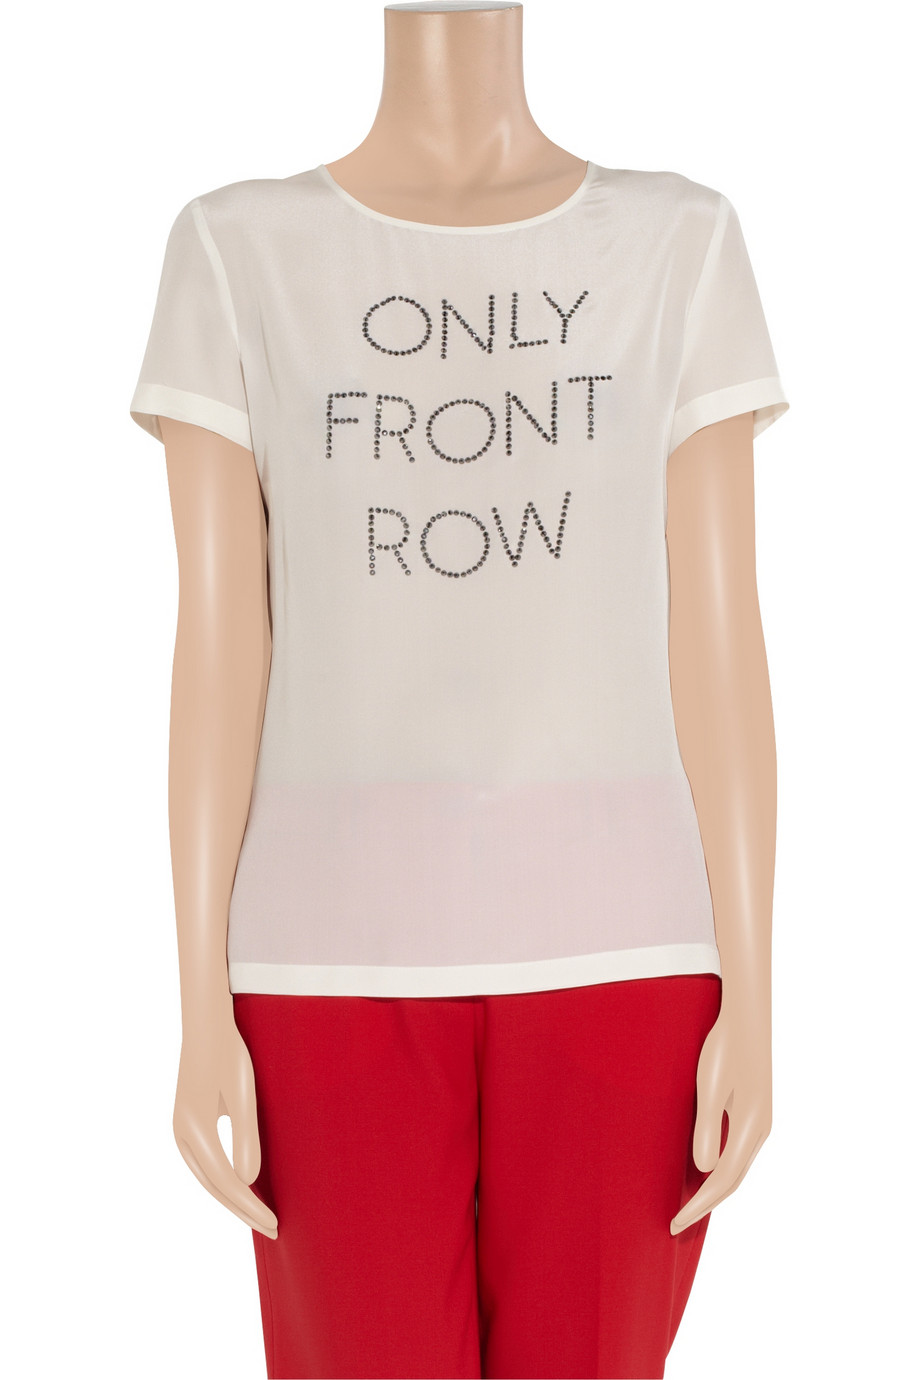 Boutique moschino diamant embellished silk top in white lyst for Boutique tops